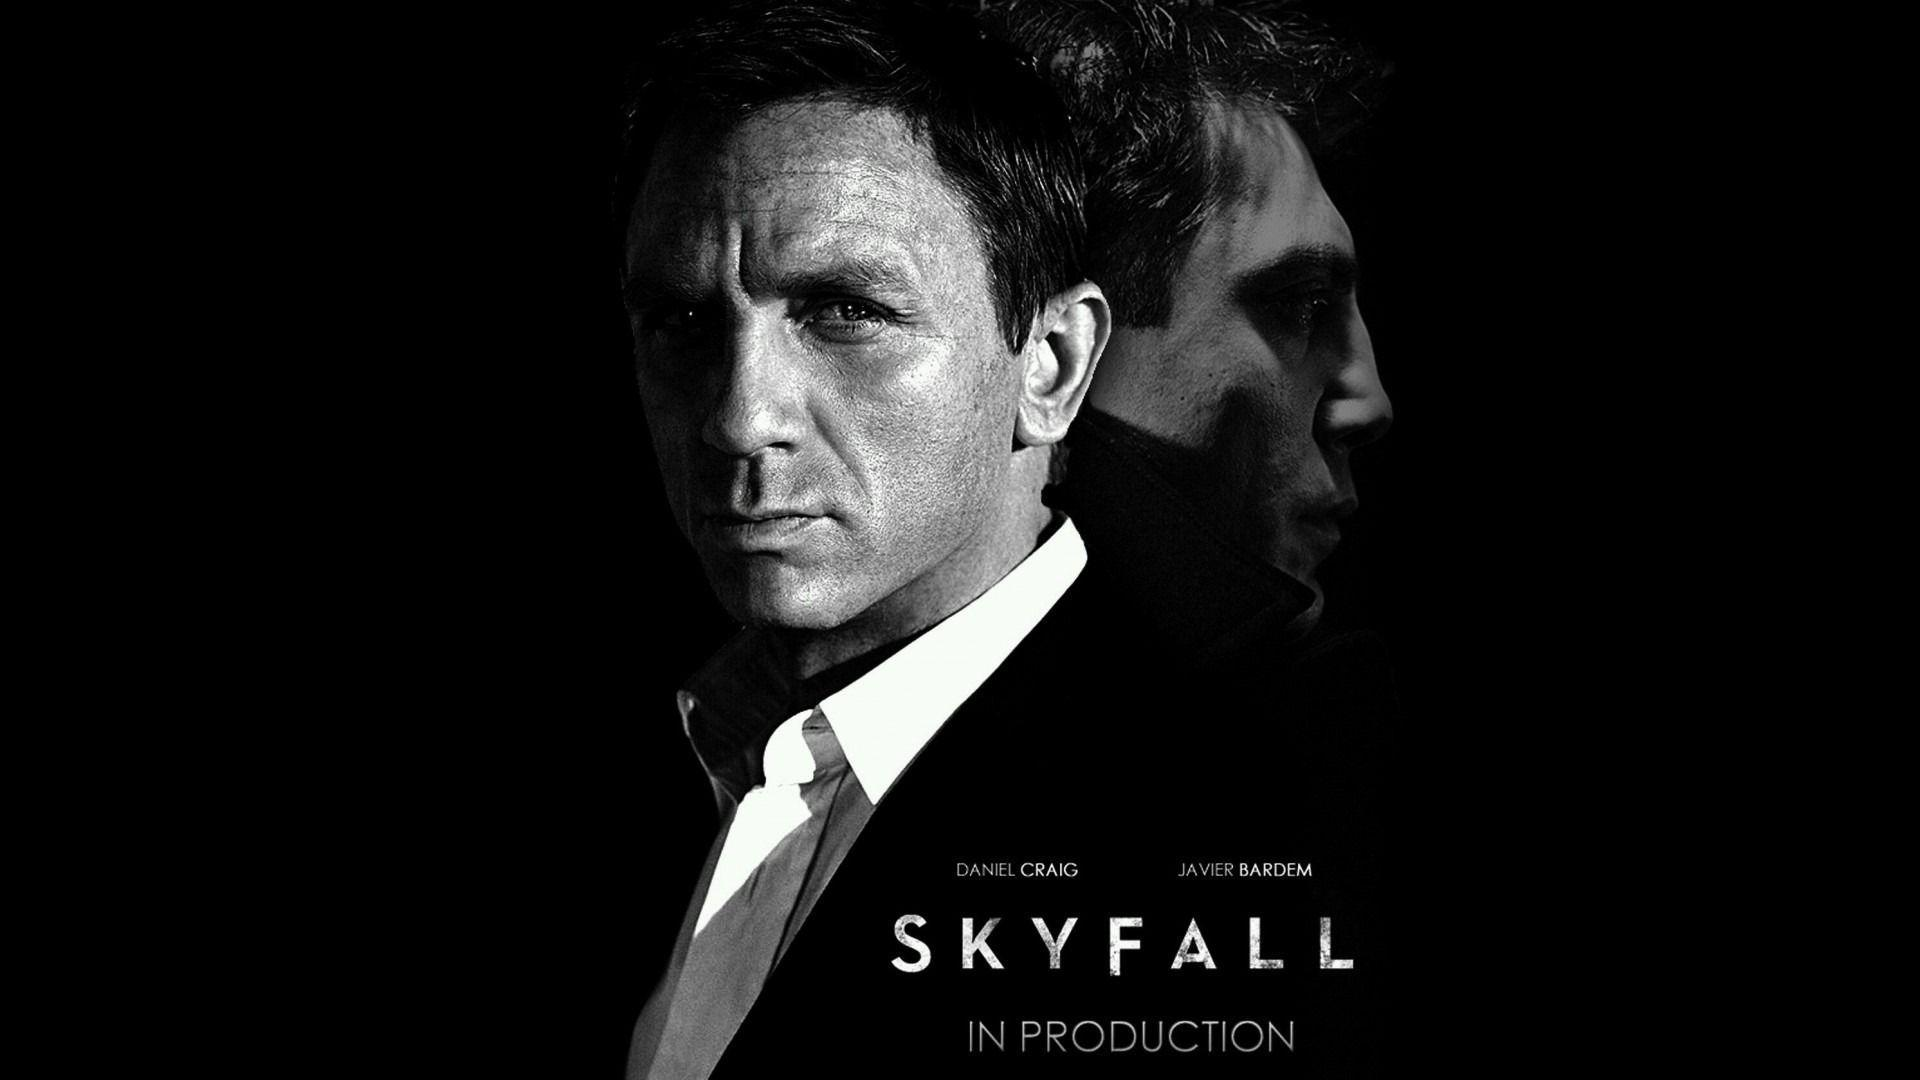 Skyfall Movies HD Wallpapers 1080p Imageize:1920x1080